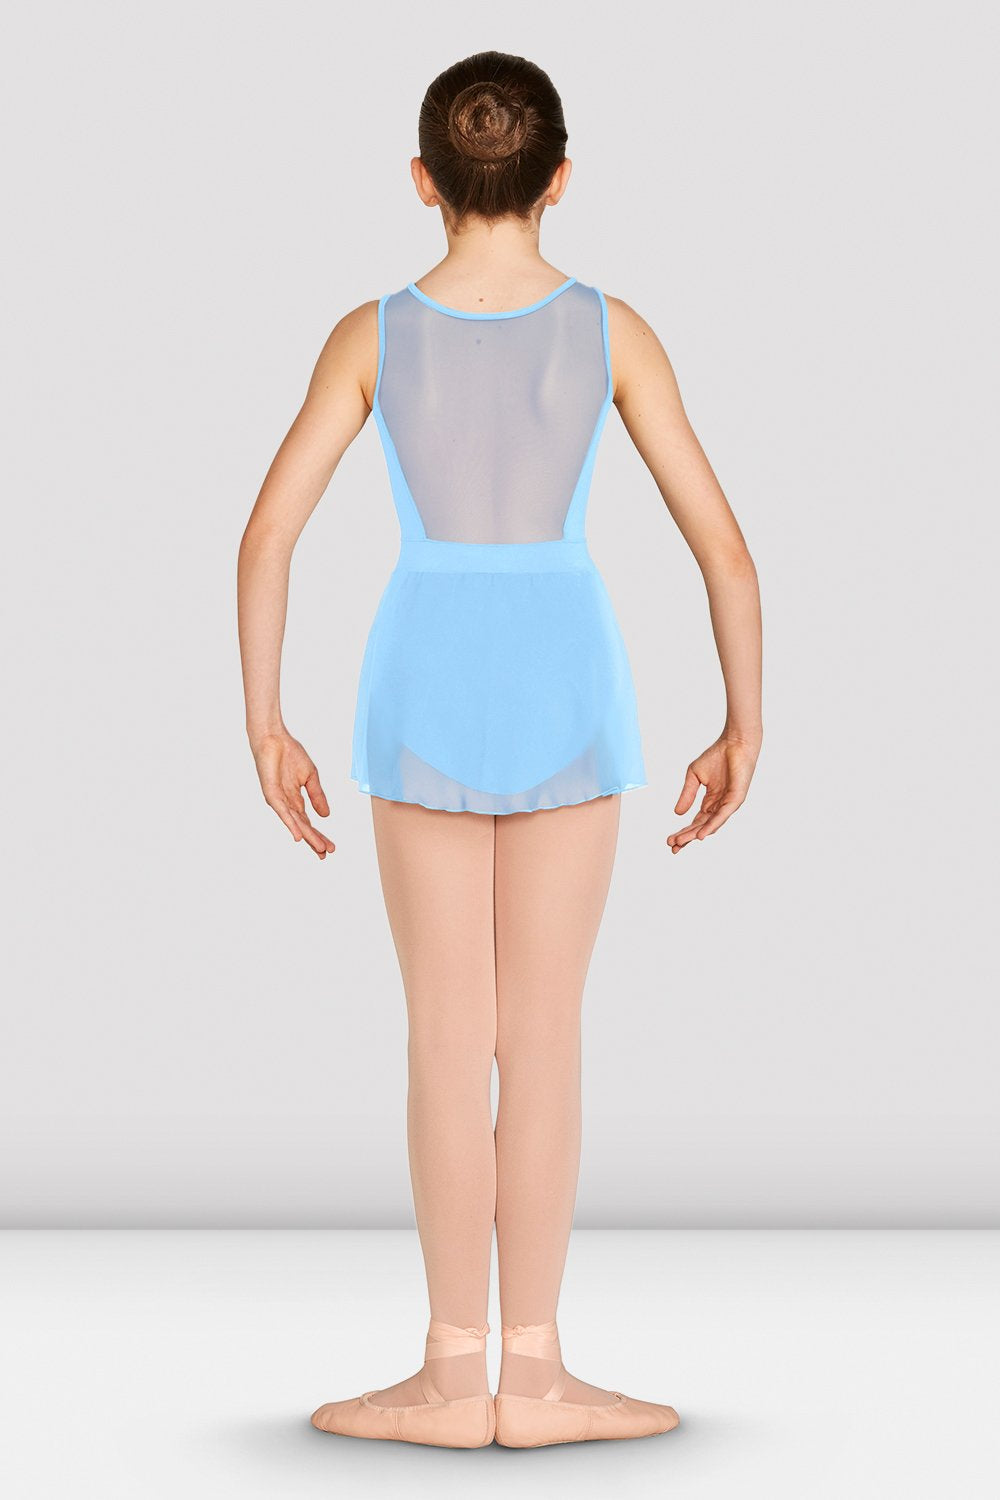 Girls Caidyn Skirted Tank Leotard - BLOCH US